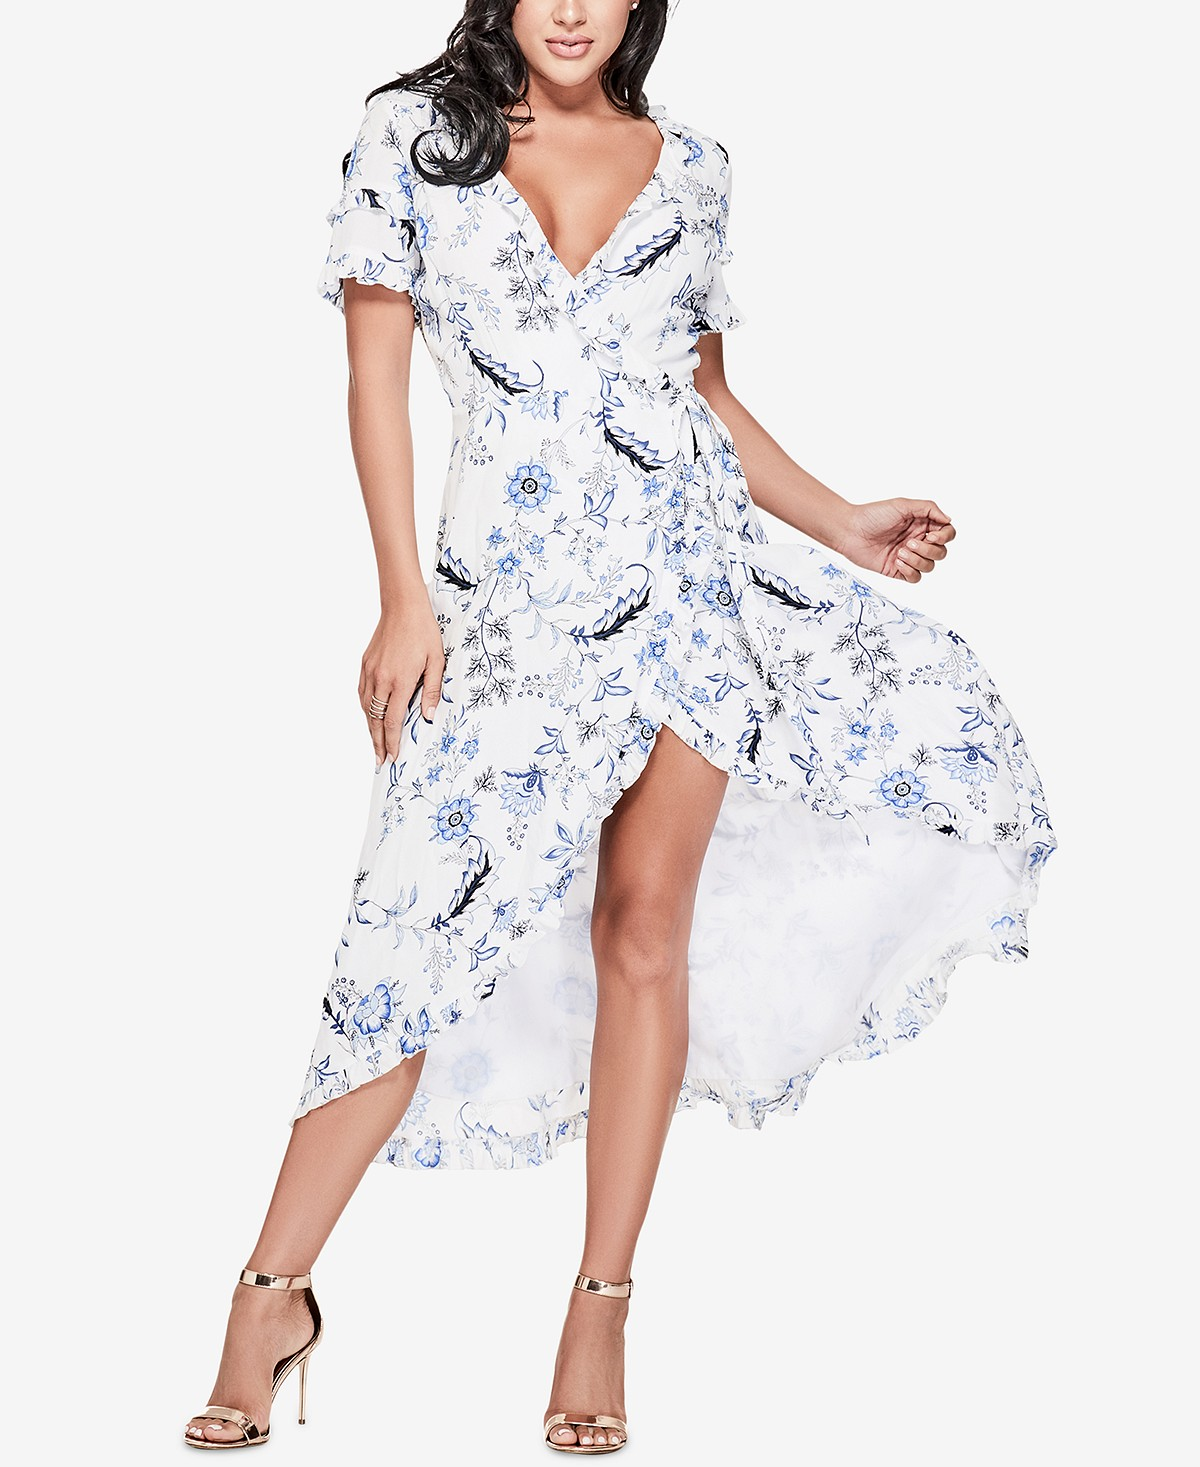 Guess Ruffle Floral Maxi Dress.jpg